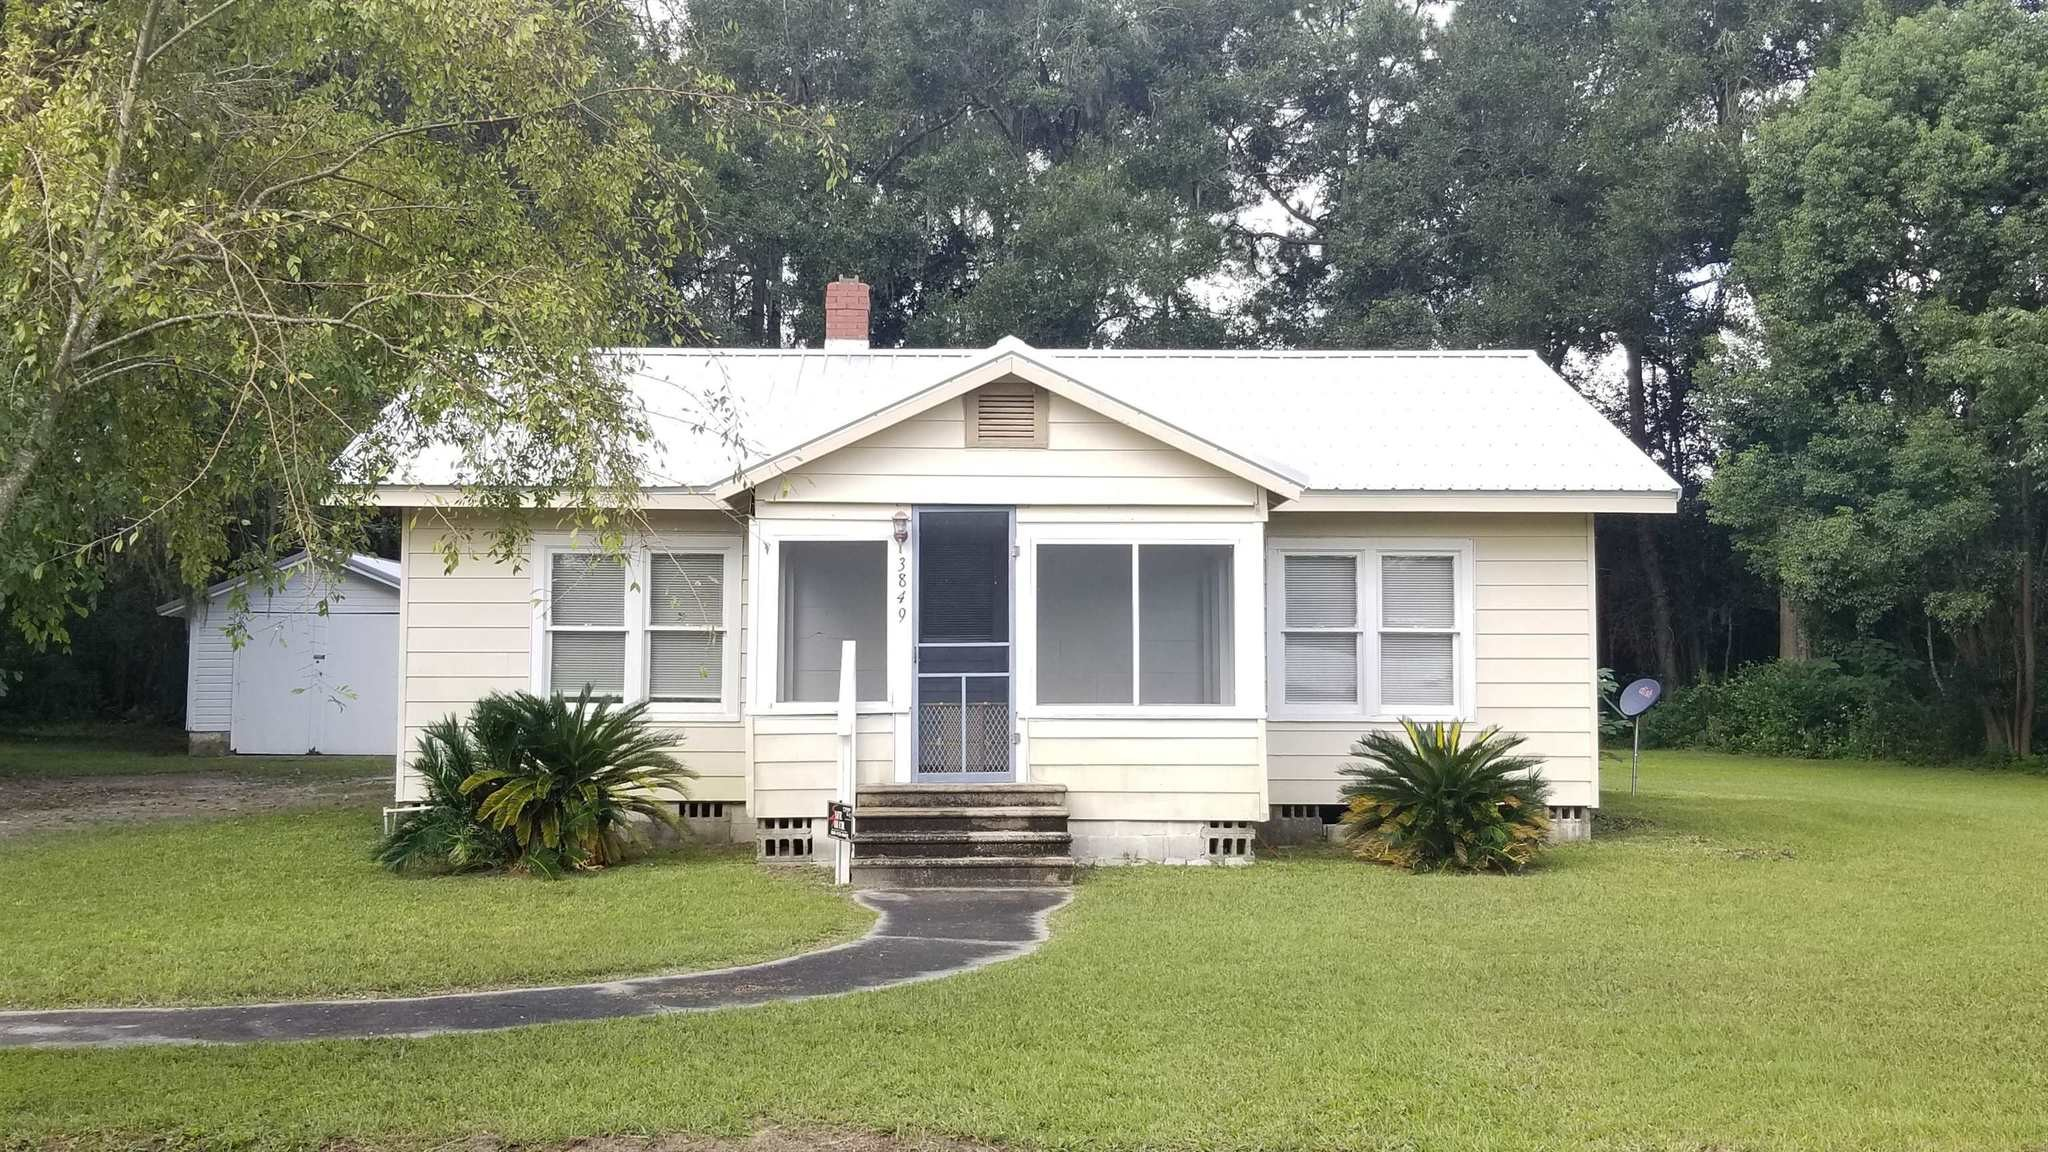 2-Bedroom House In Perry